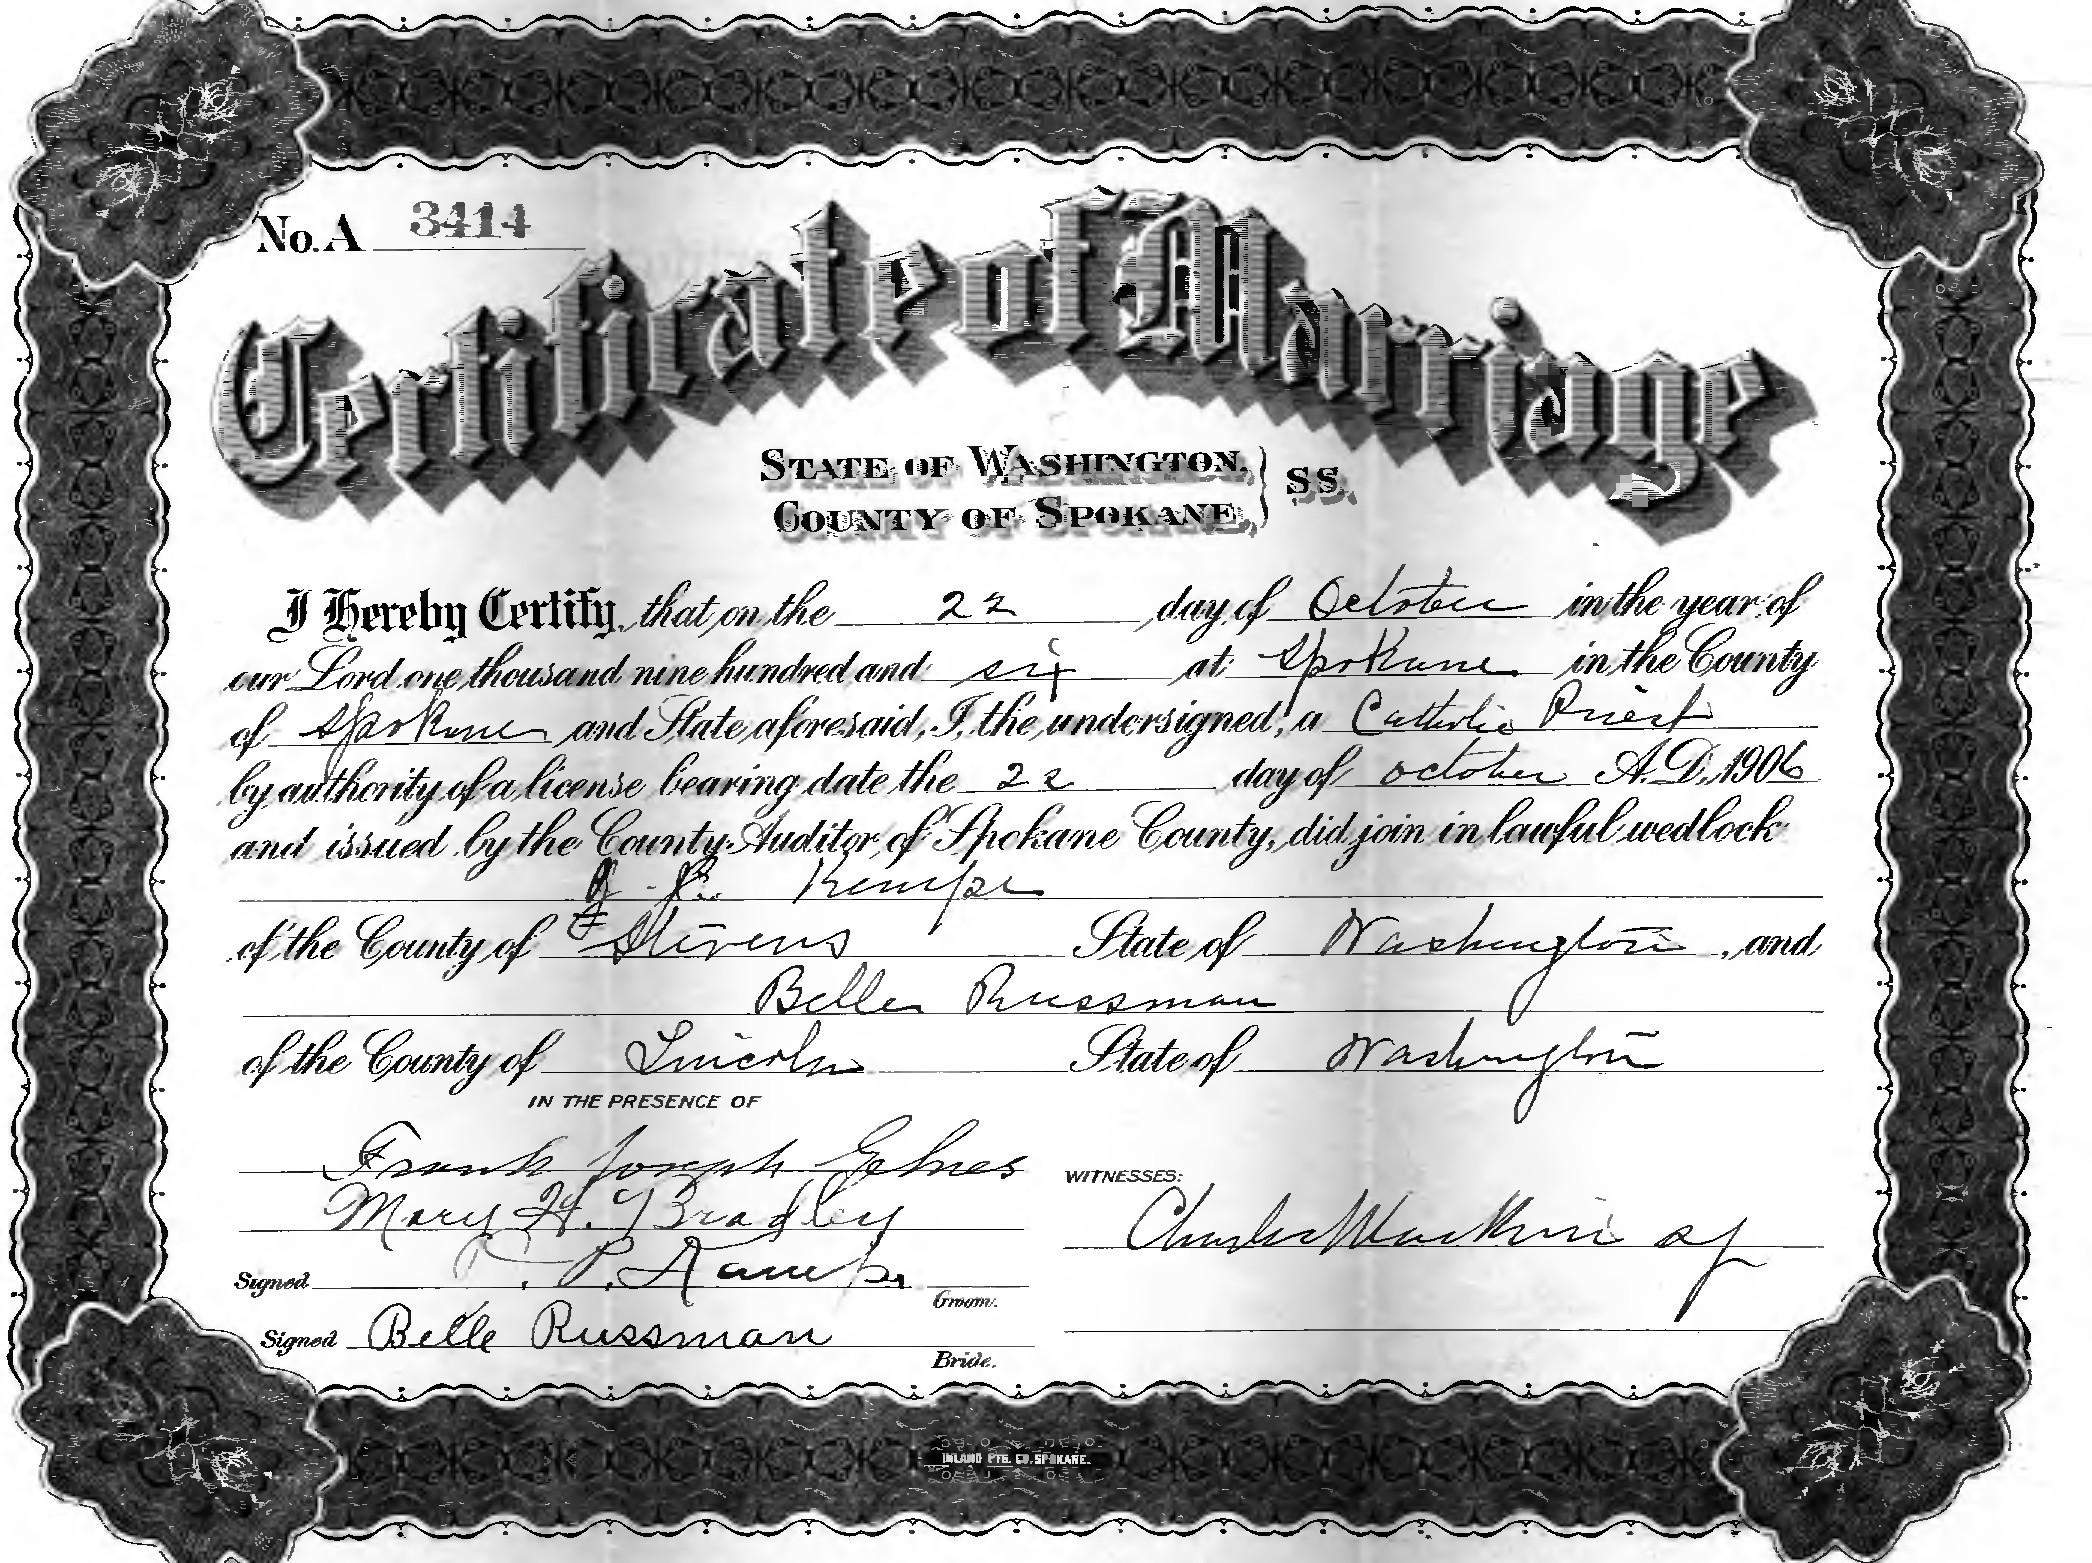 Kempe kamp rossman leopold family information isabelle was 27 housekeeping in lind lincoln co wa born in iowa to john and mary lepolo leopoldlippold russman the marriage certificate xflitez Choice Image